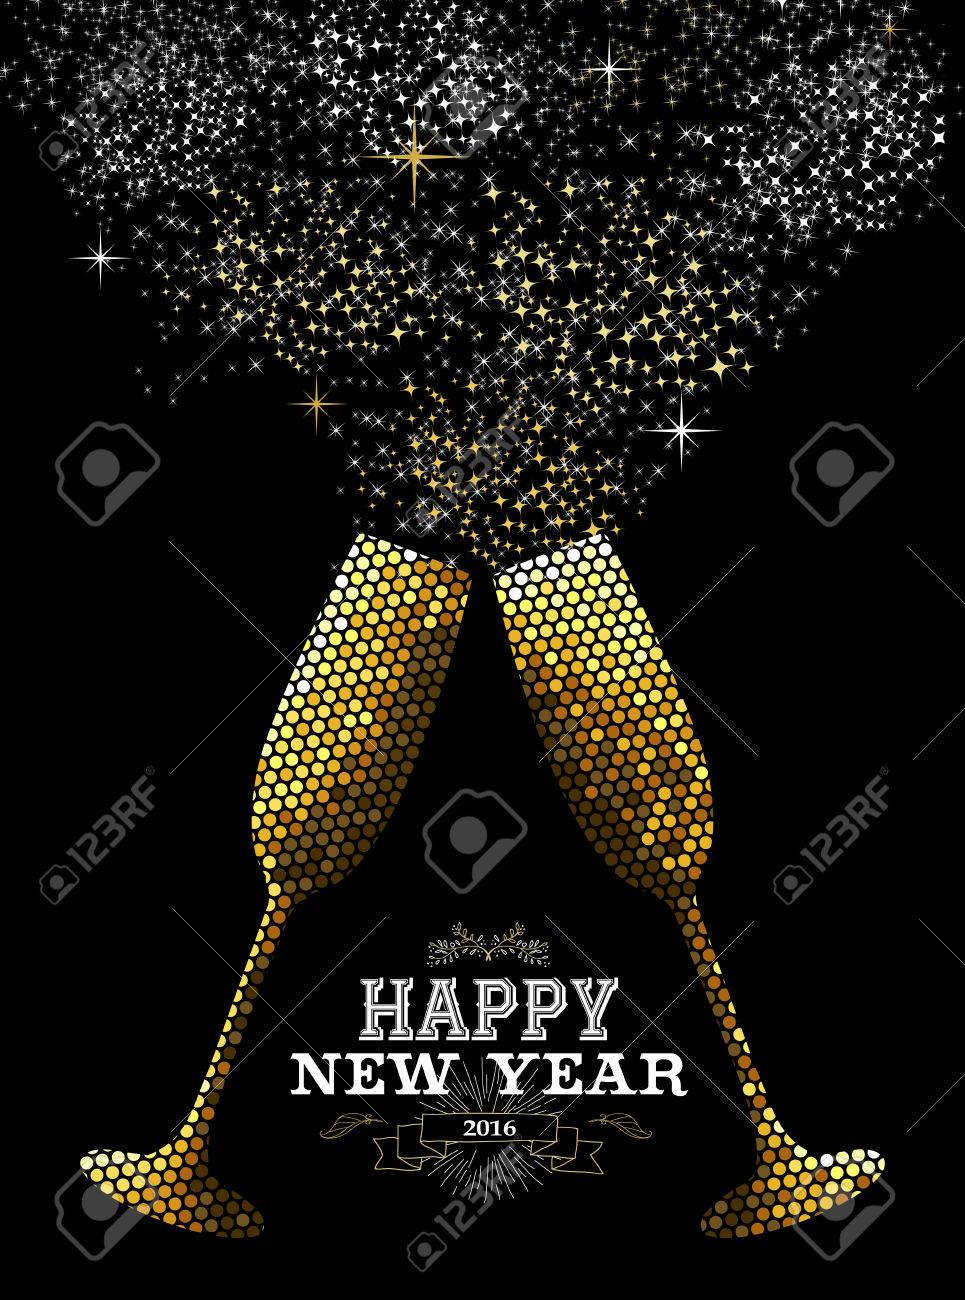 merry christmas happy new year fancy gold drinking glasses making celebration toast in mosaic style